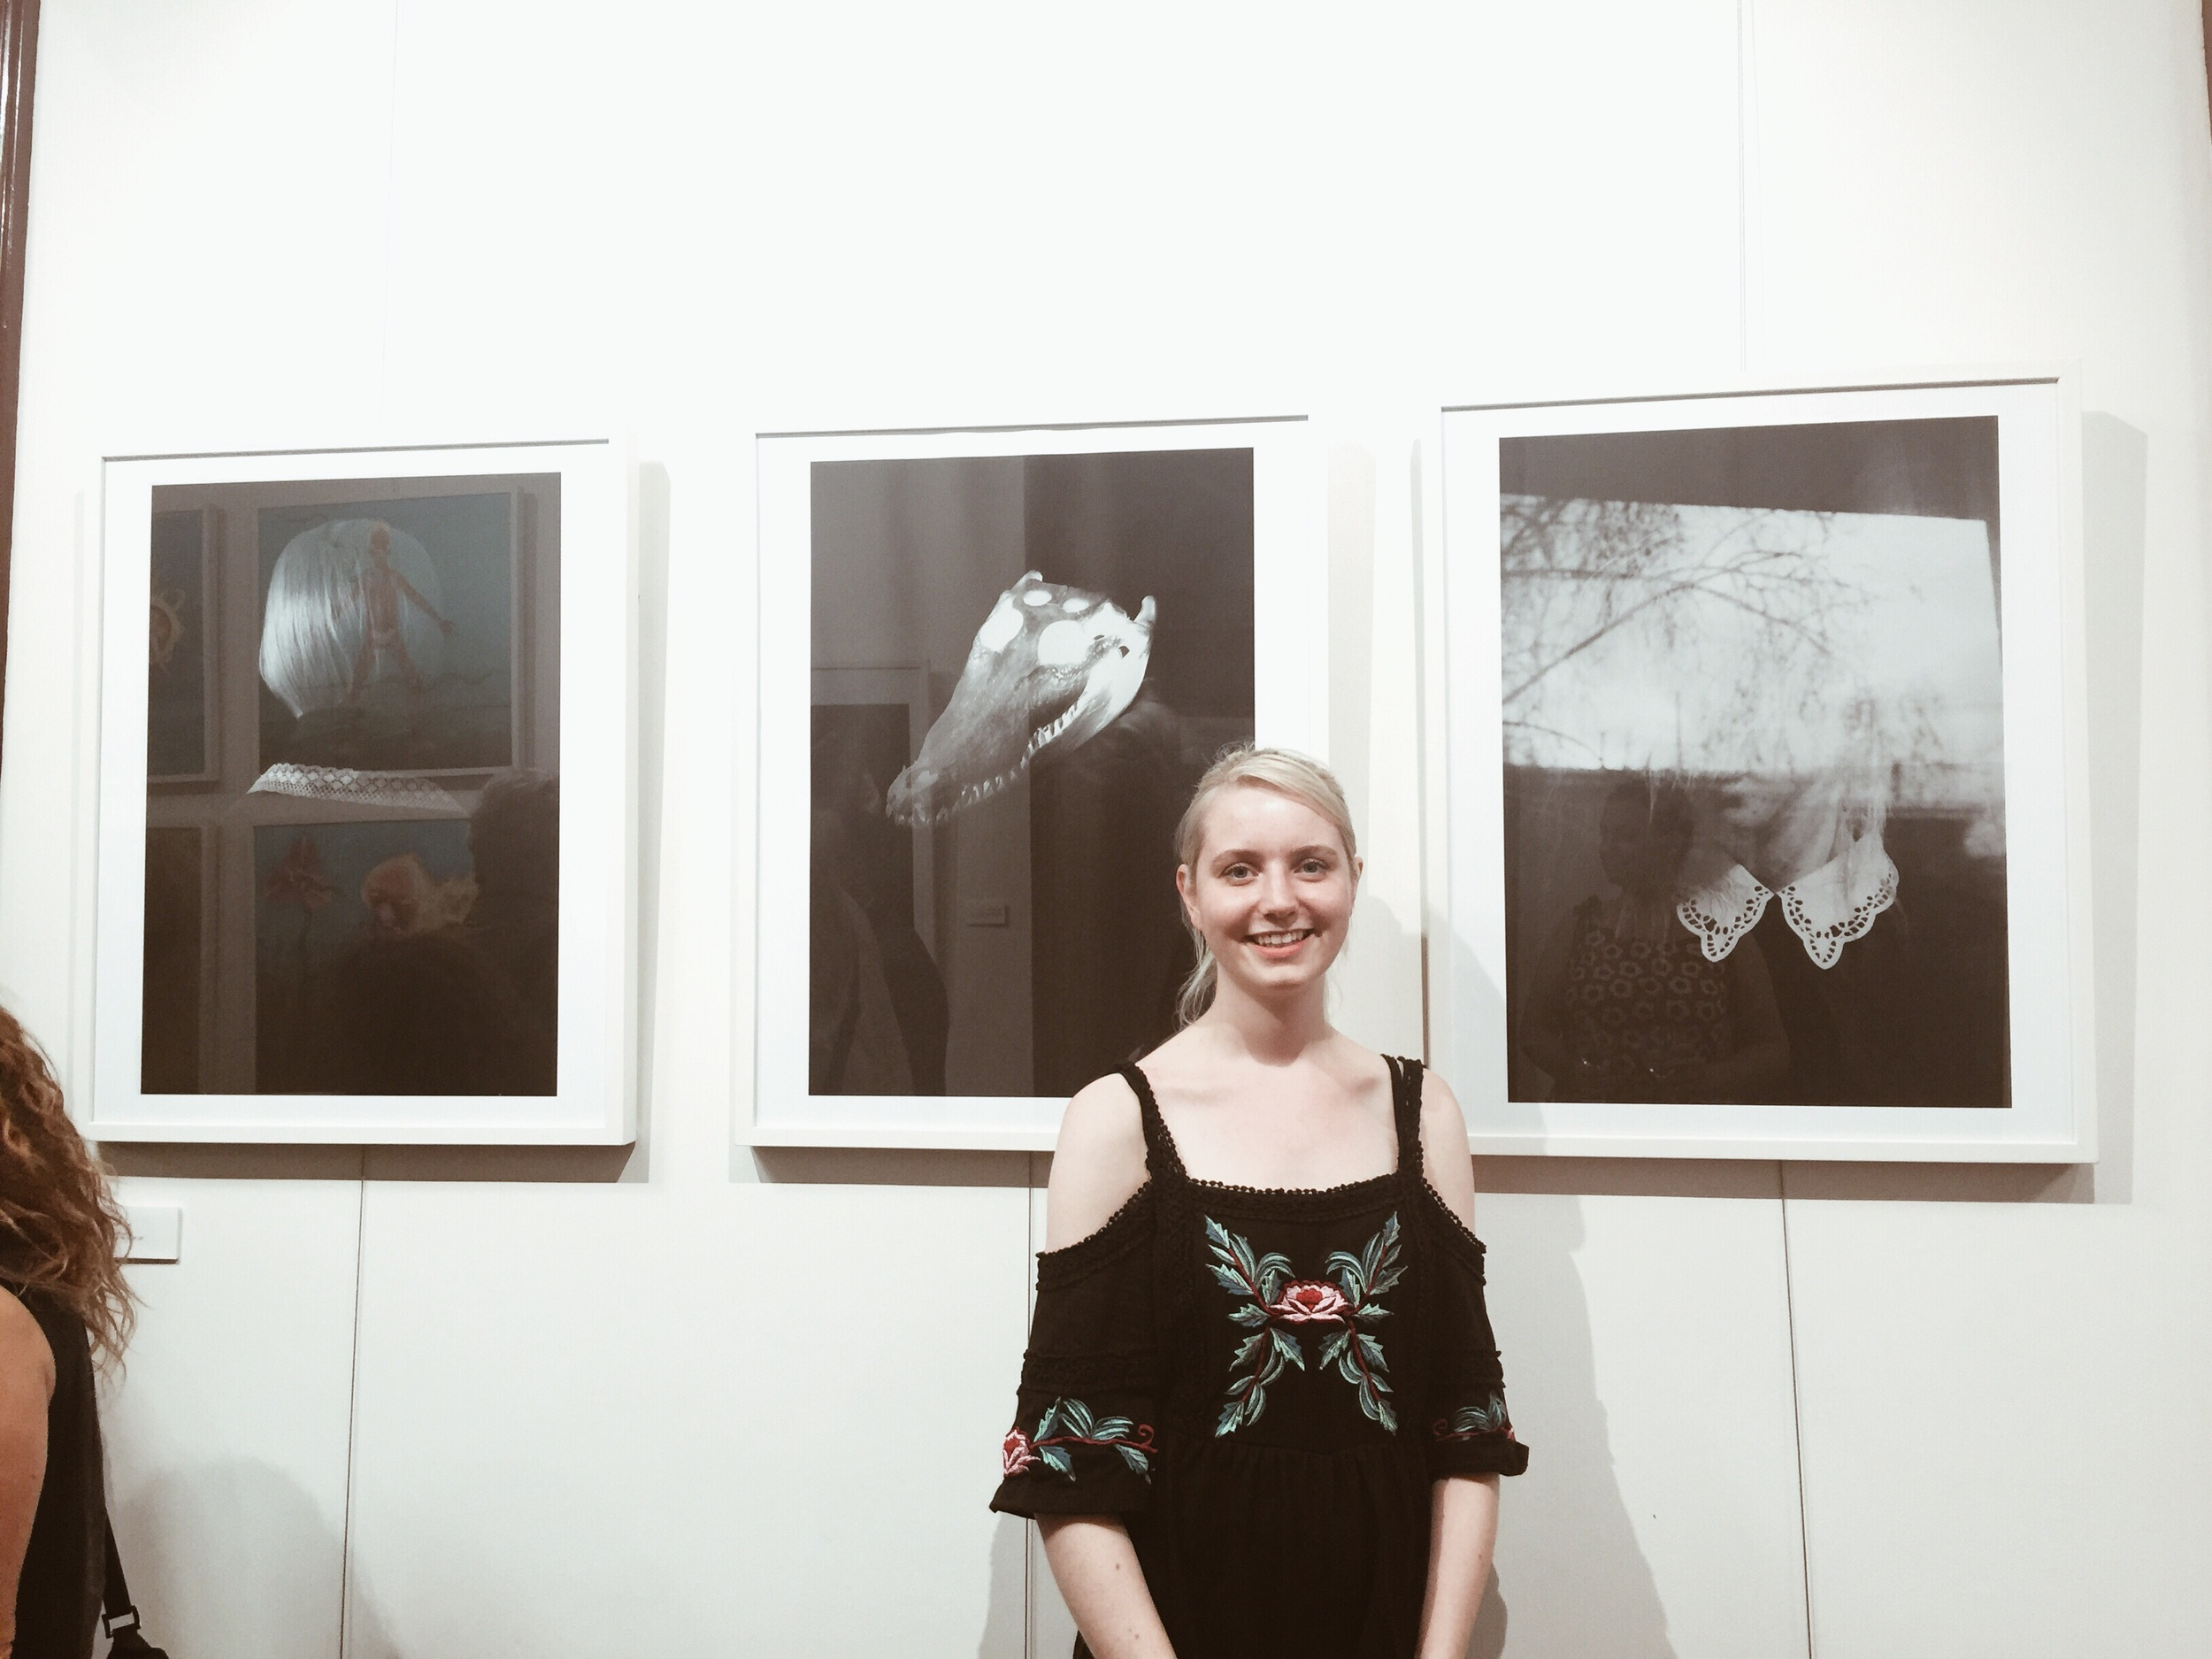 Sophie in front of her work 'BLANK SPACE'